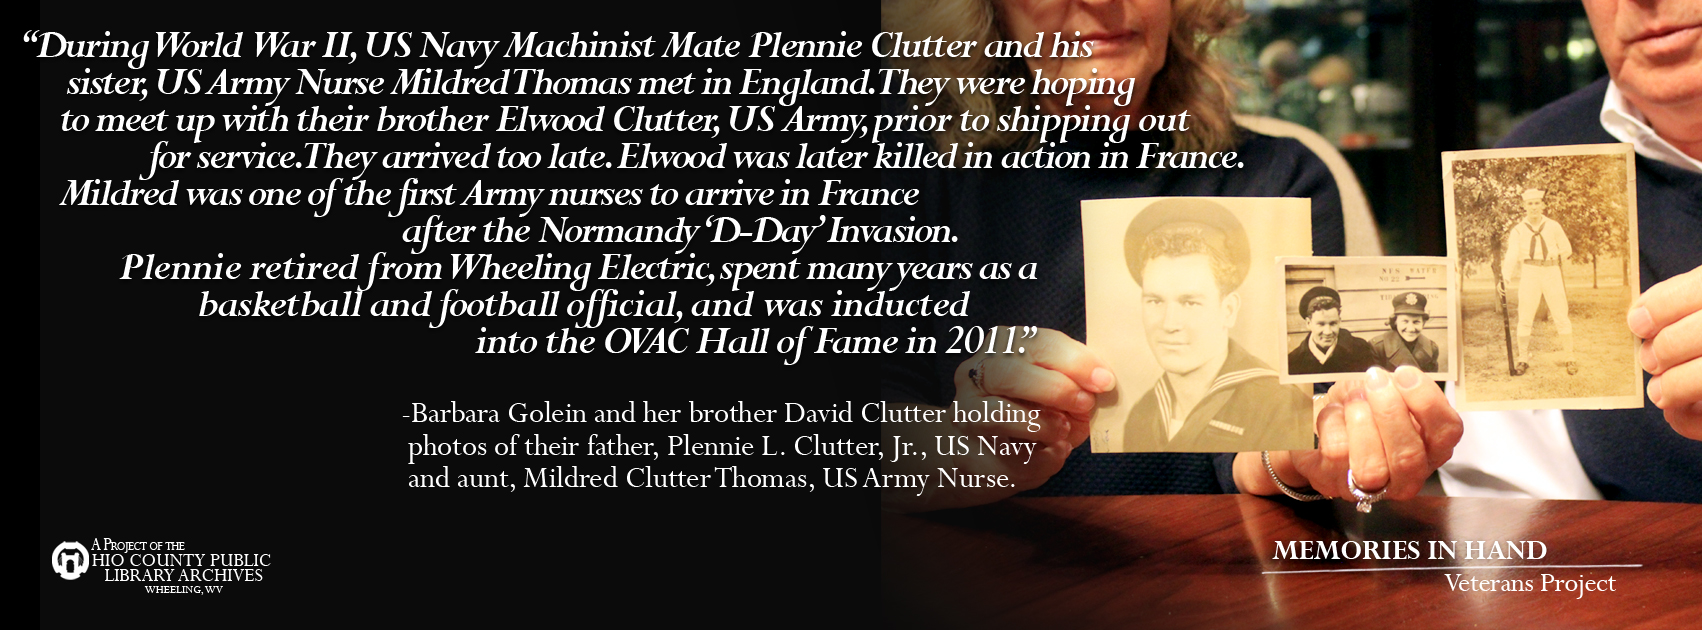 Plennie L. Clutter, Jr., US Navy and Mildred Clutter Thomas, US Army Nurse., WWII